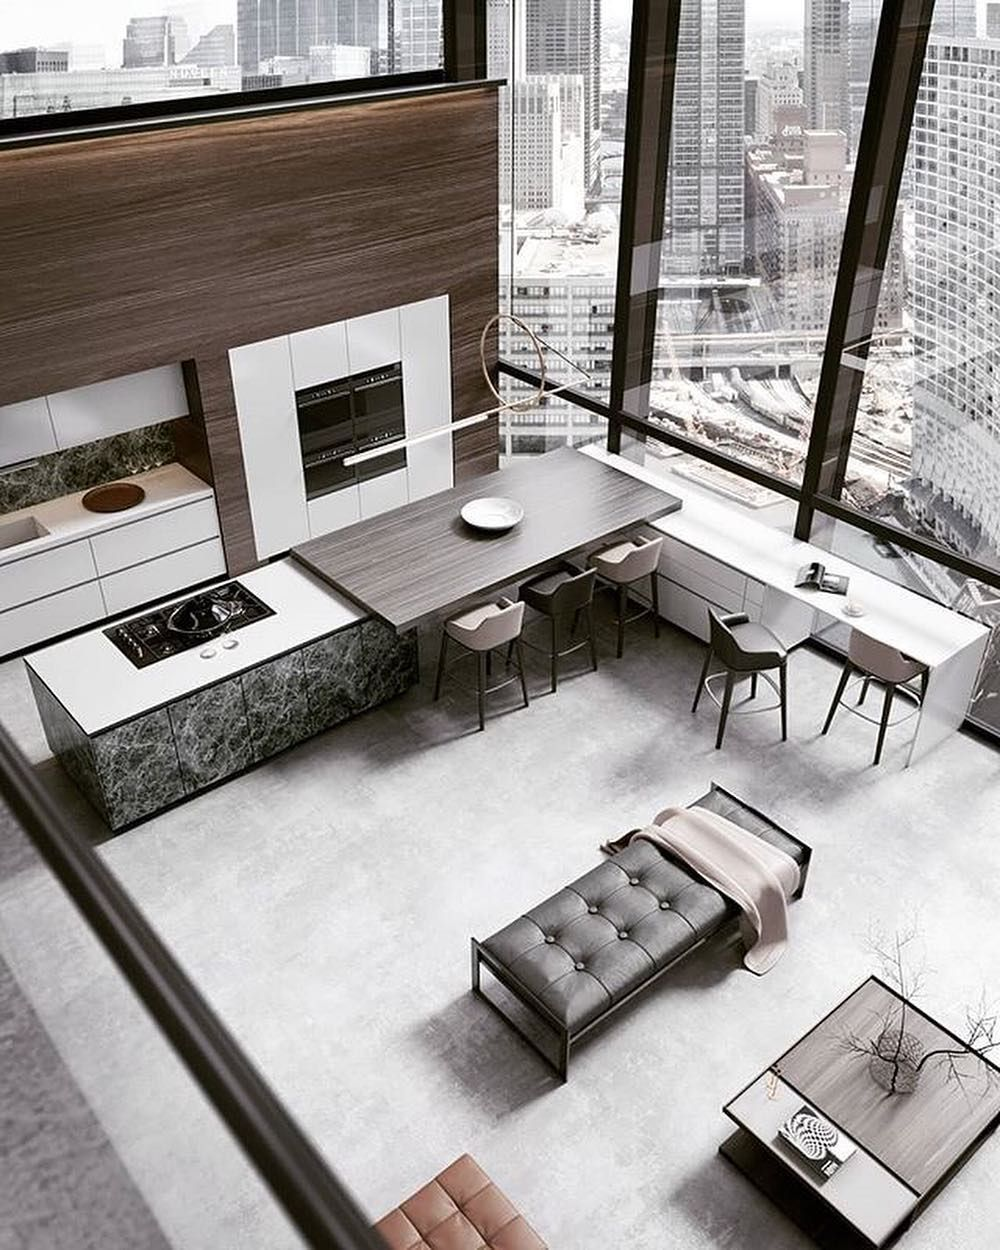 Amazing Architecture On Instagram Penthouse Interior Design By